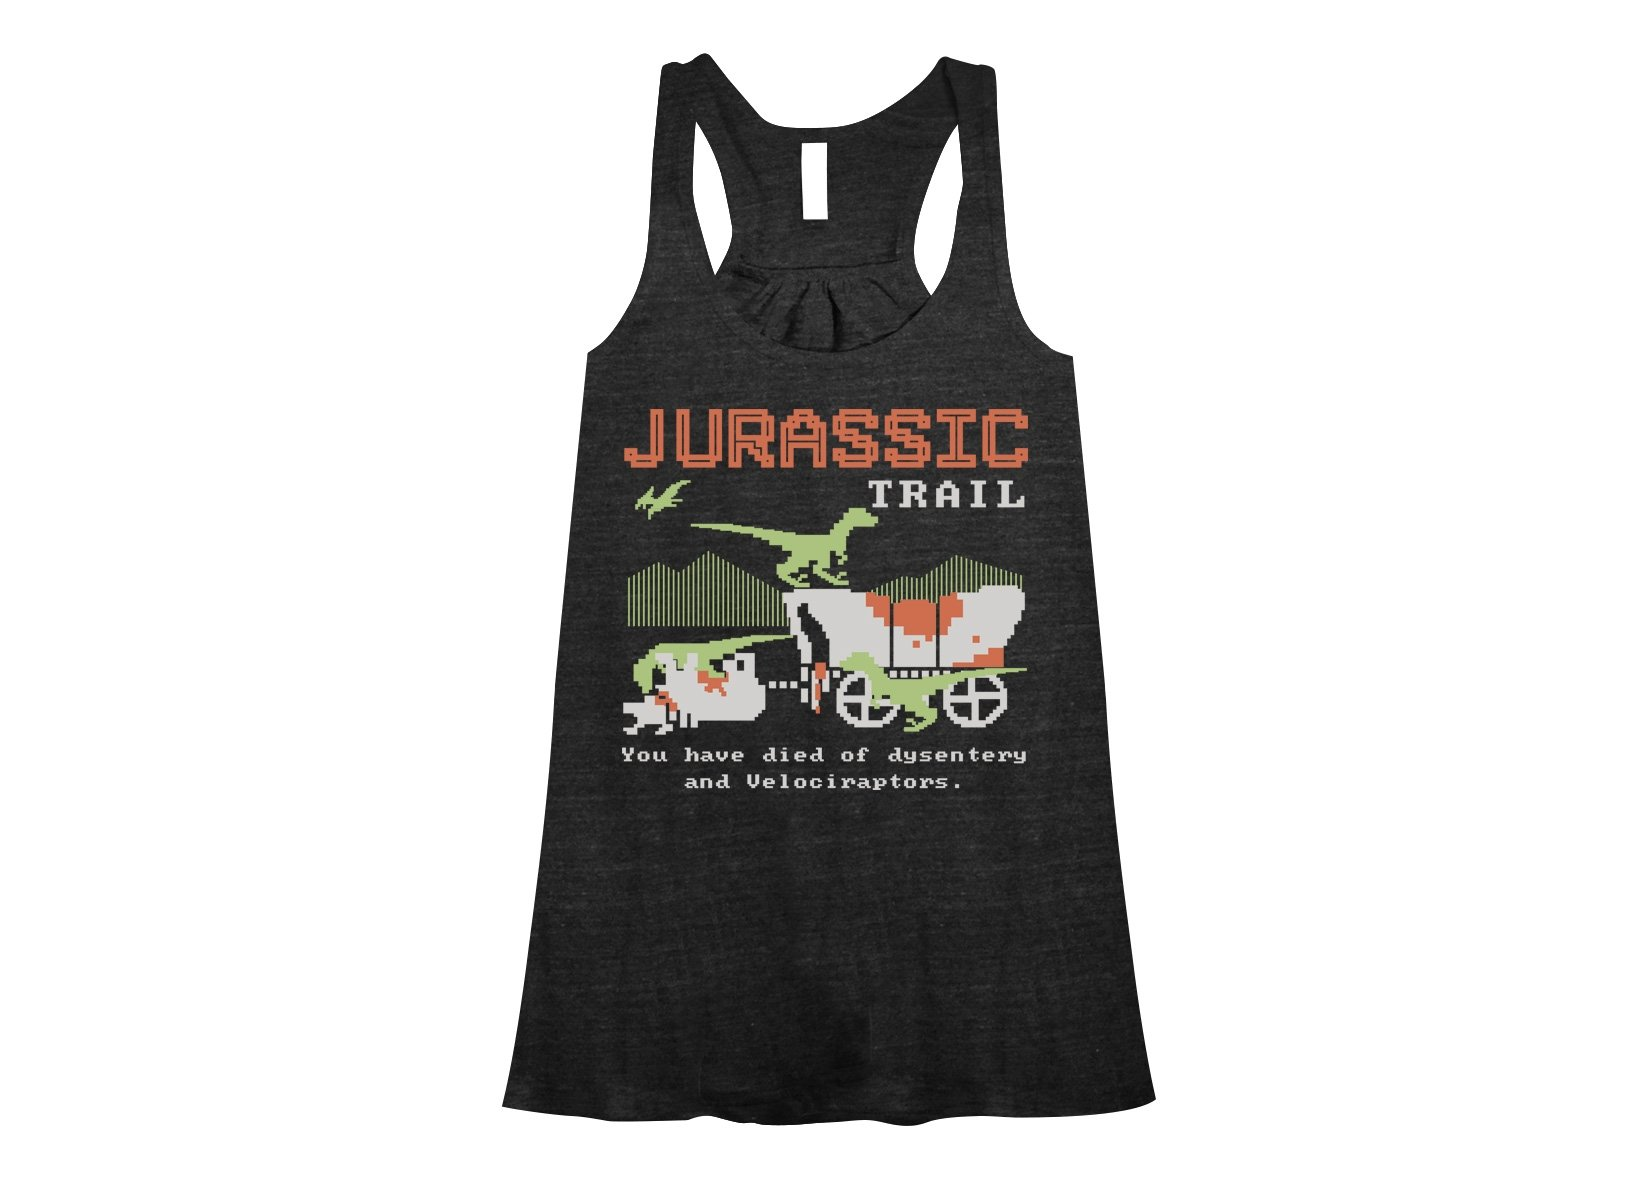 Jurassic Trail on Womens Tanks T-Shirt